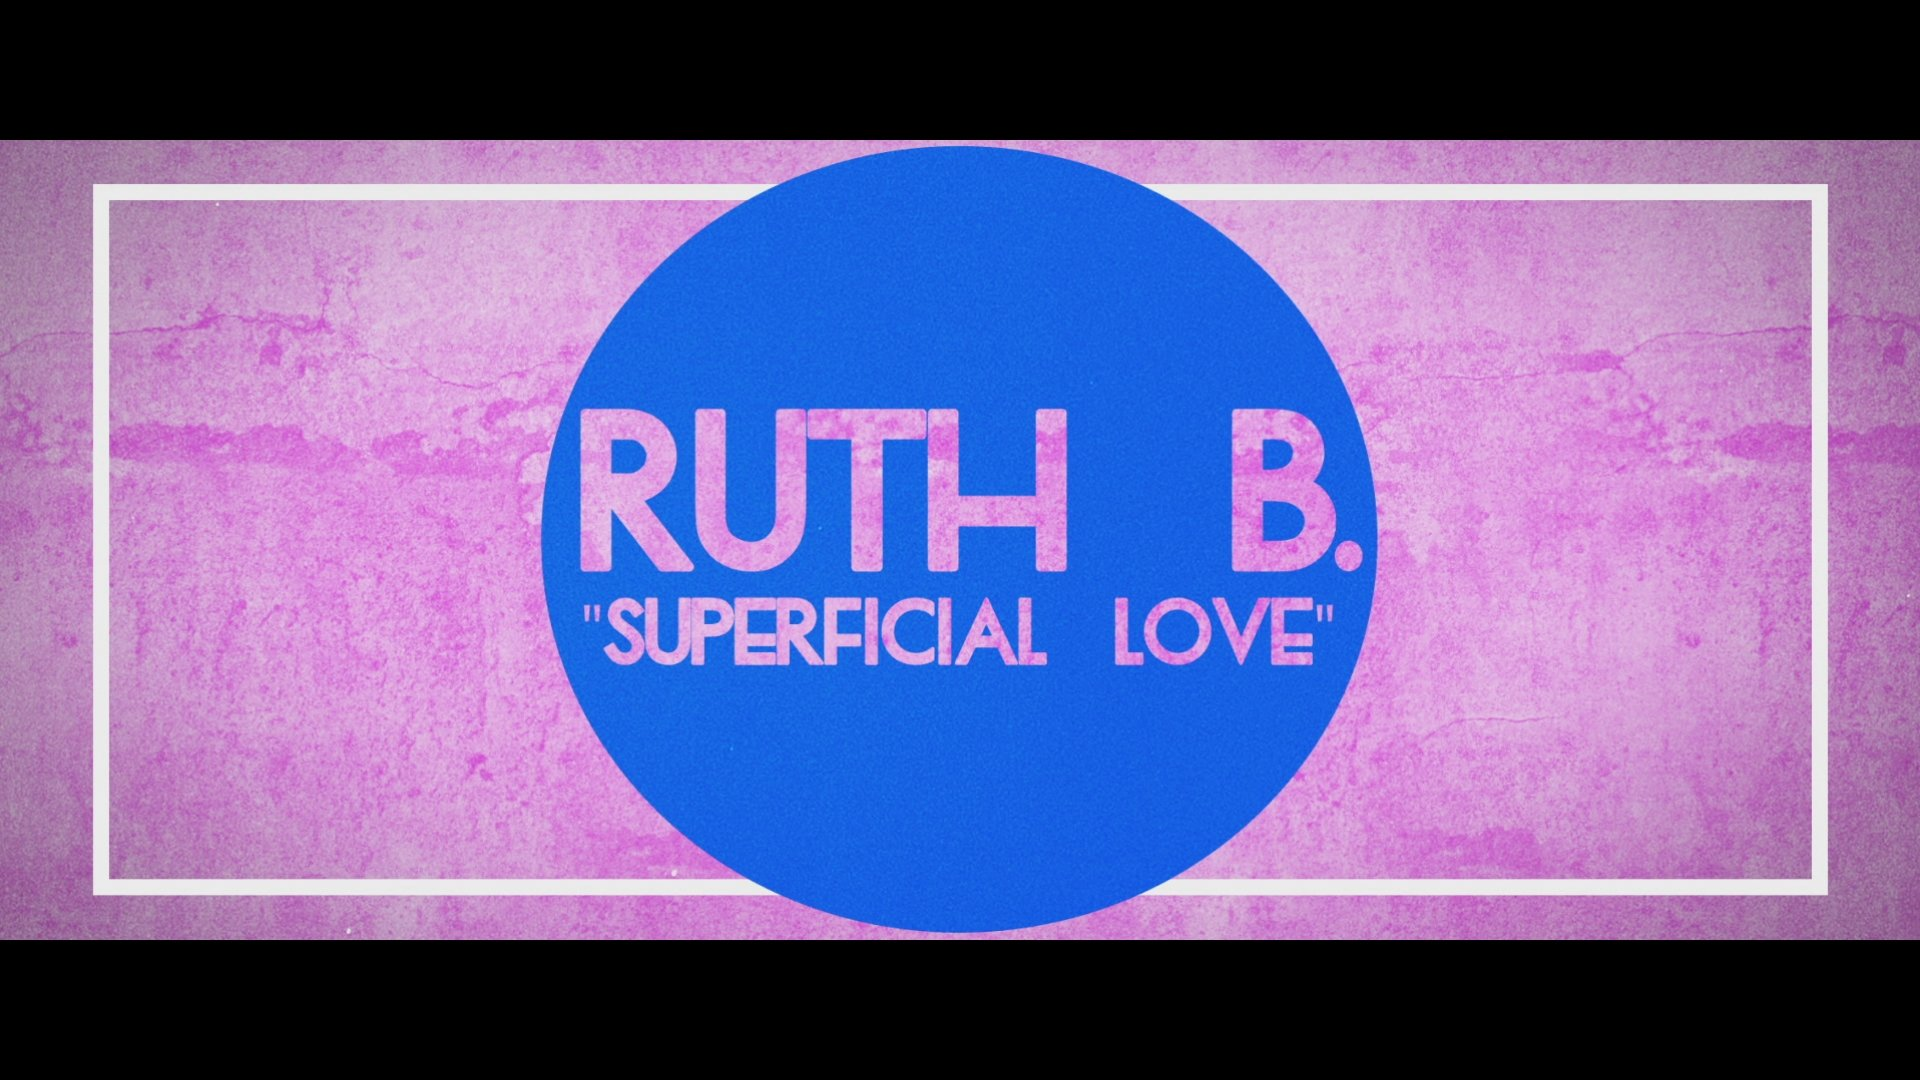 What does superficial love mean